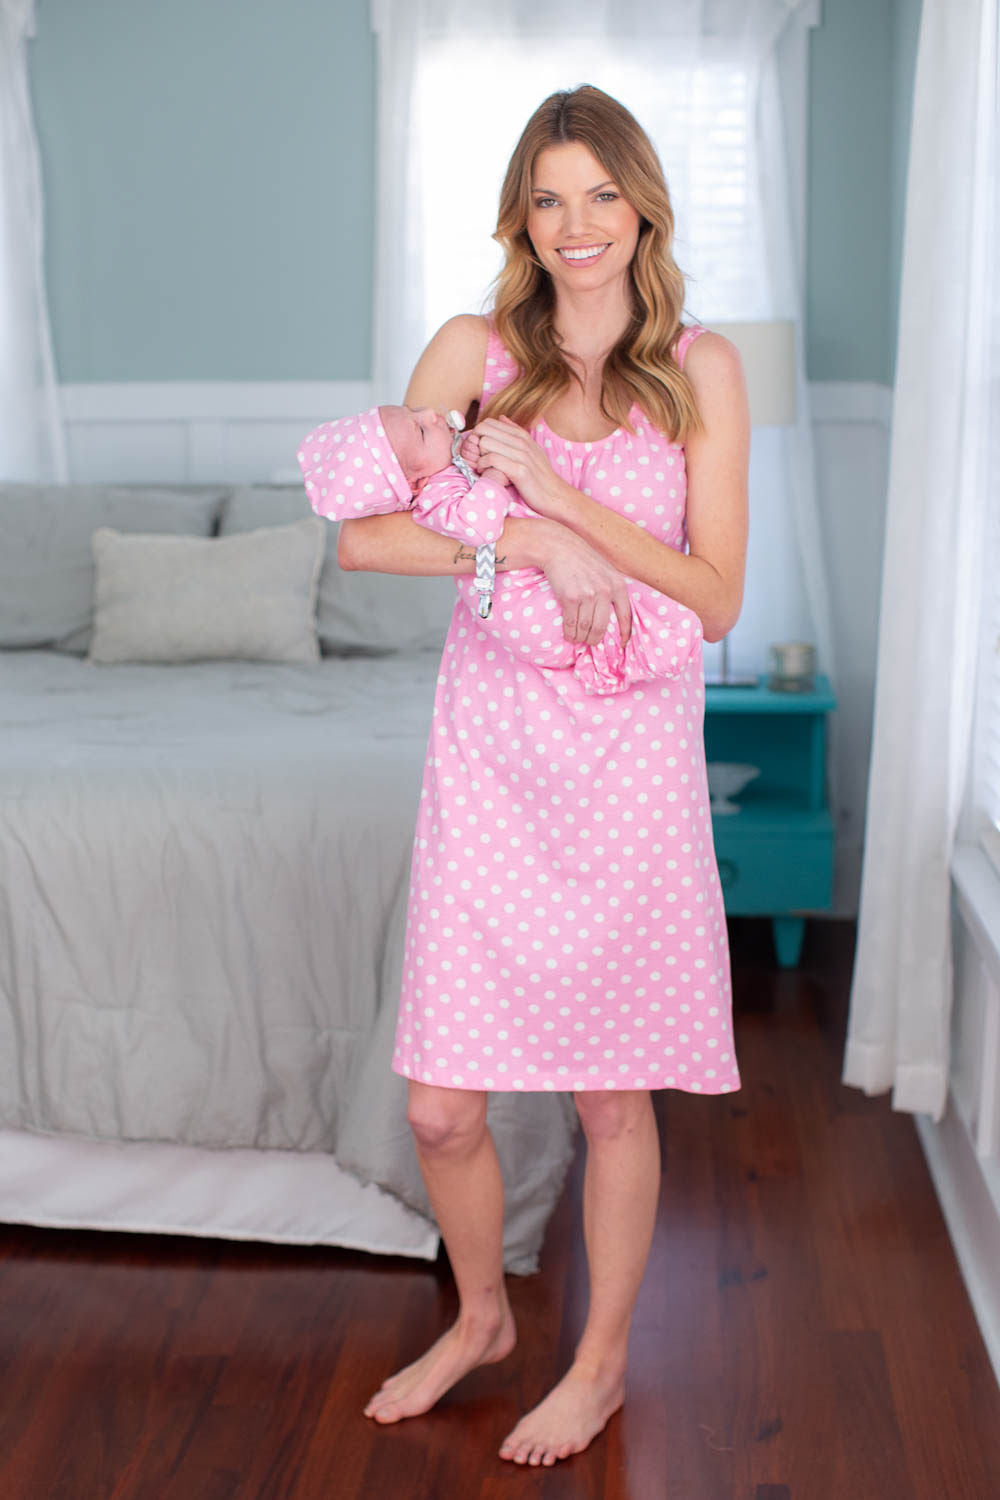 be6970a9693 Molly maternity nursing nightgown matching baby going home outfit ...